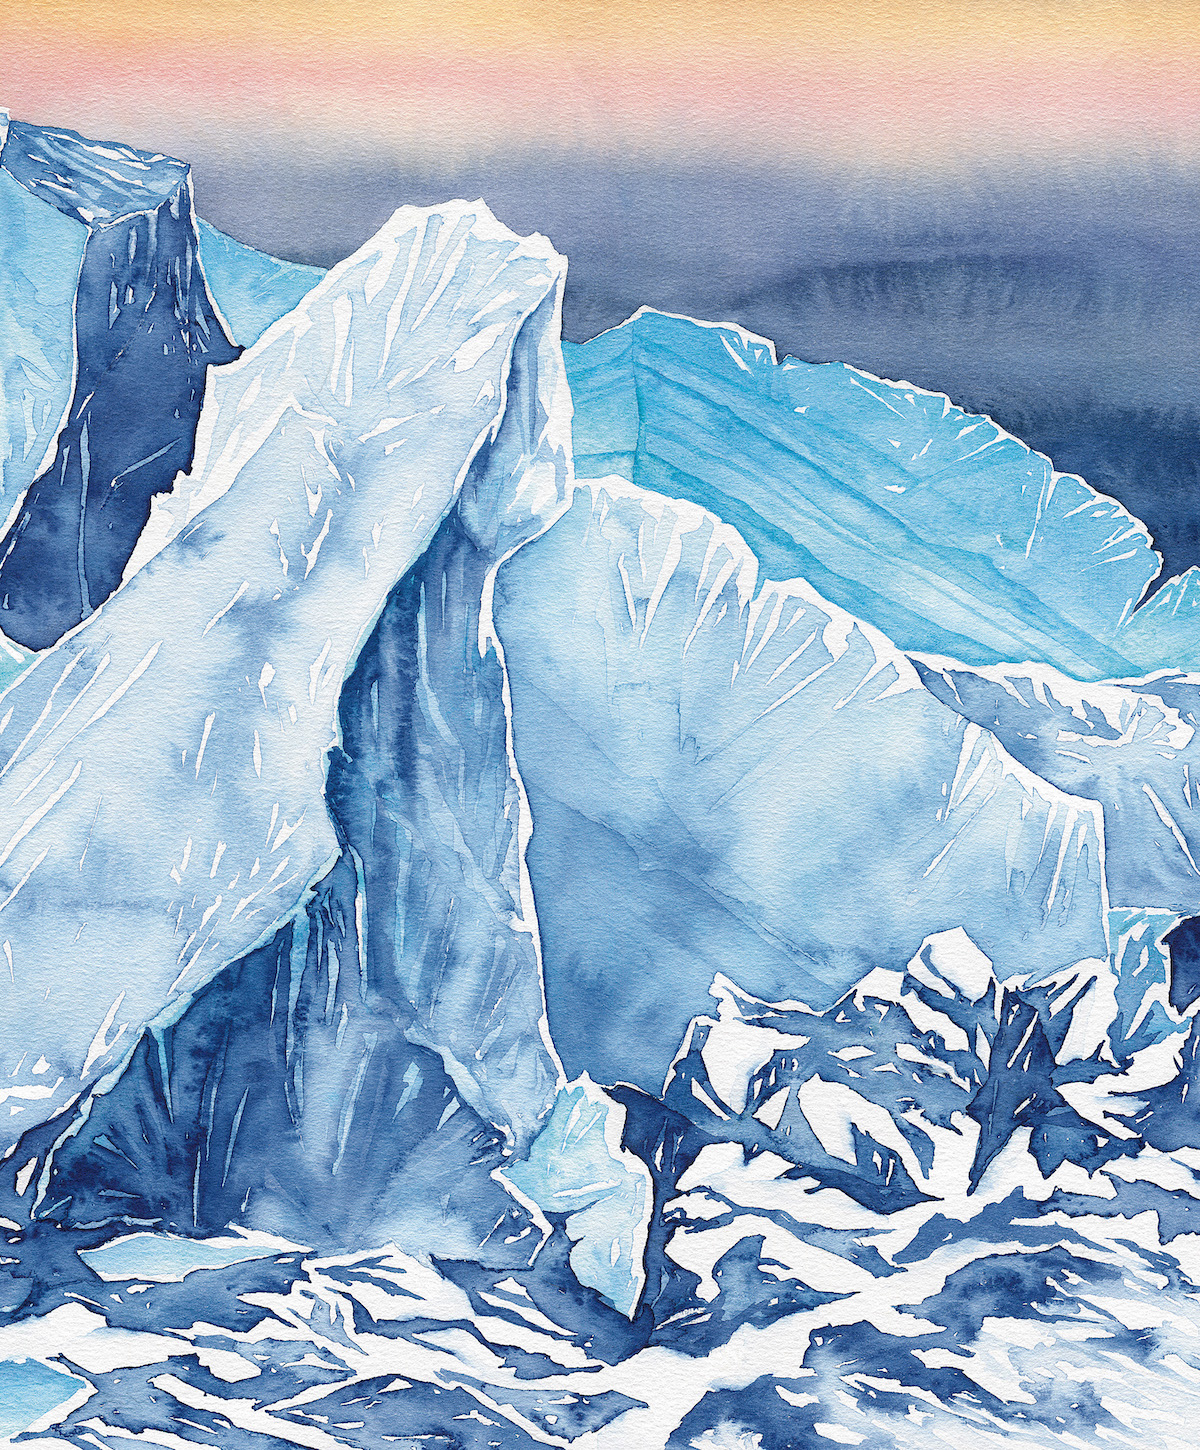 Icefall. Ingraham Glacier, Mt. Rainier (14,410'), Cascades, Washington. The artist would like to thank Dallas Glass, Jason Hummel and Casey Sullivan for sharing reference imagery for some of the paintings in the essay. [Artwork] Claire Giordano